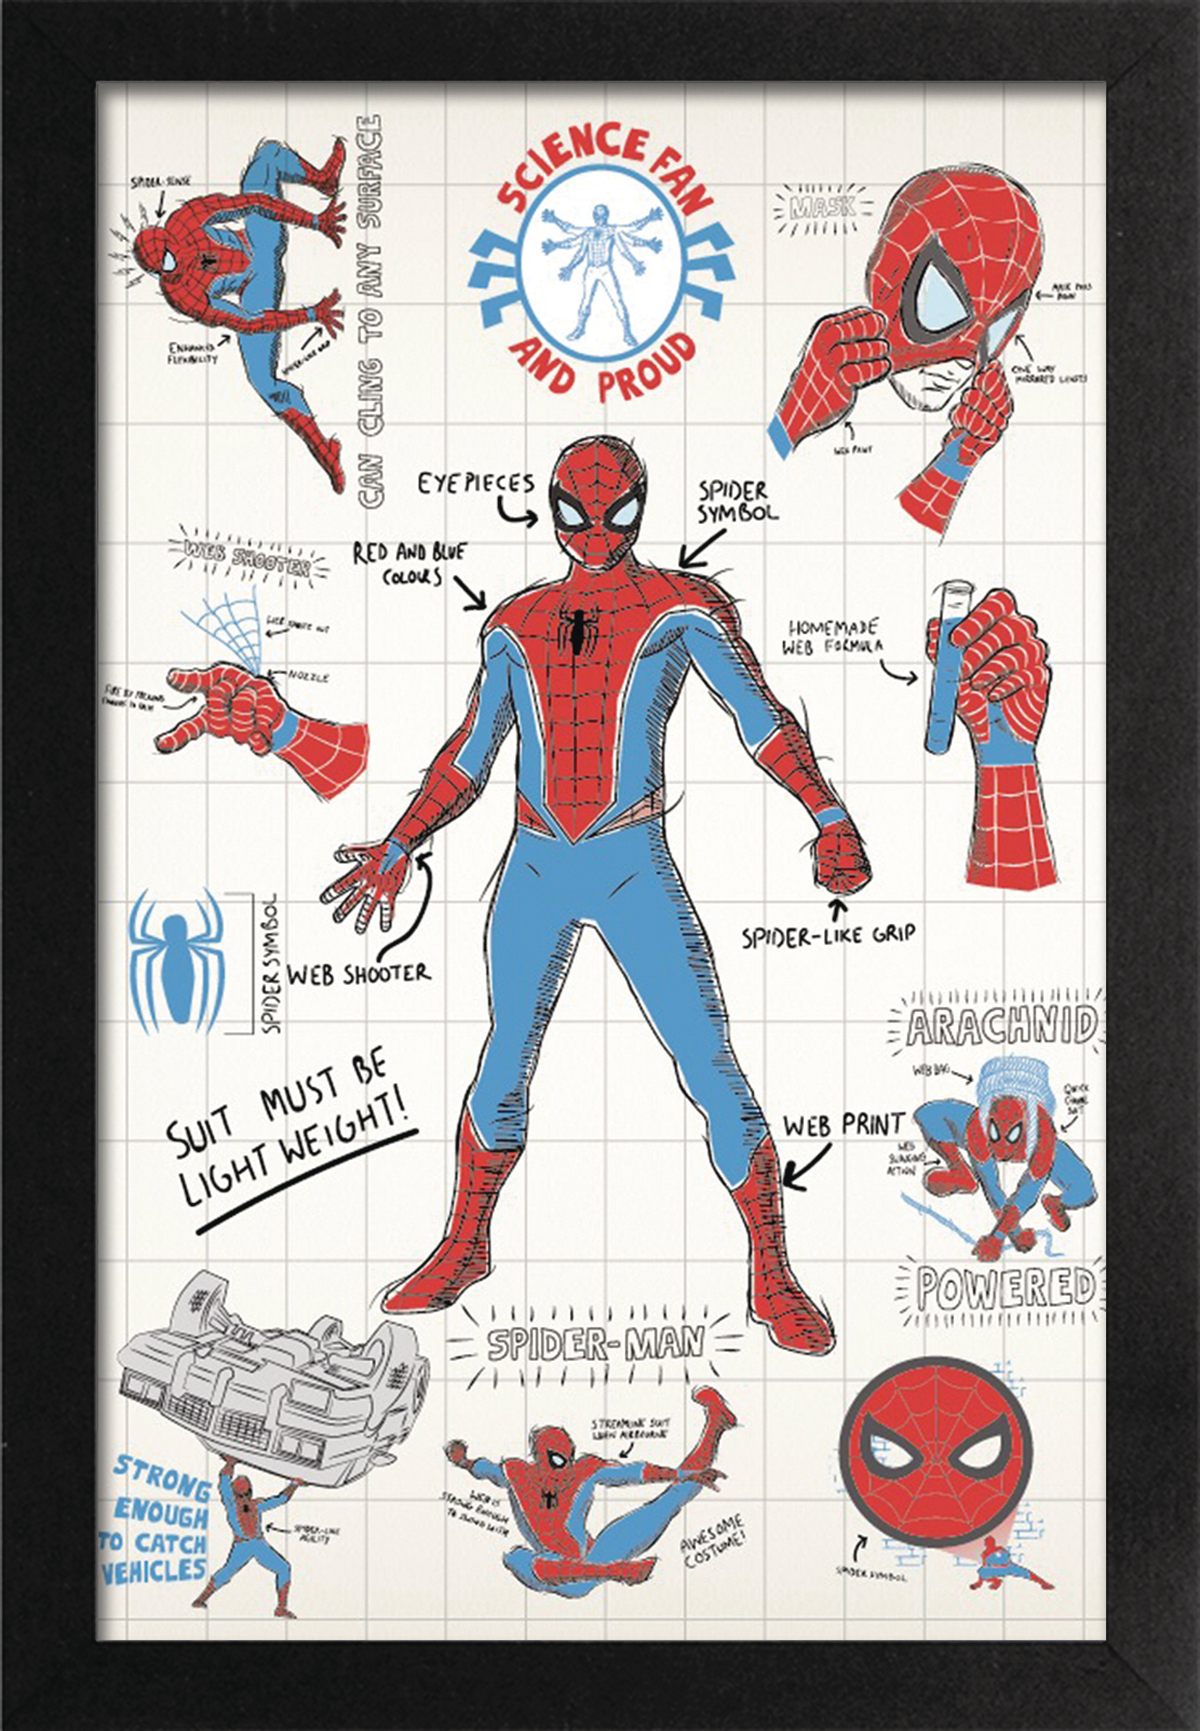 SPIDER-MAN INFOGRAPHIC FRAMED 11X17 PRINT